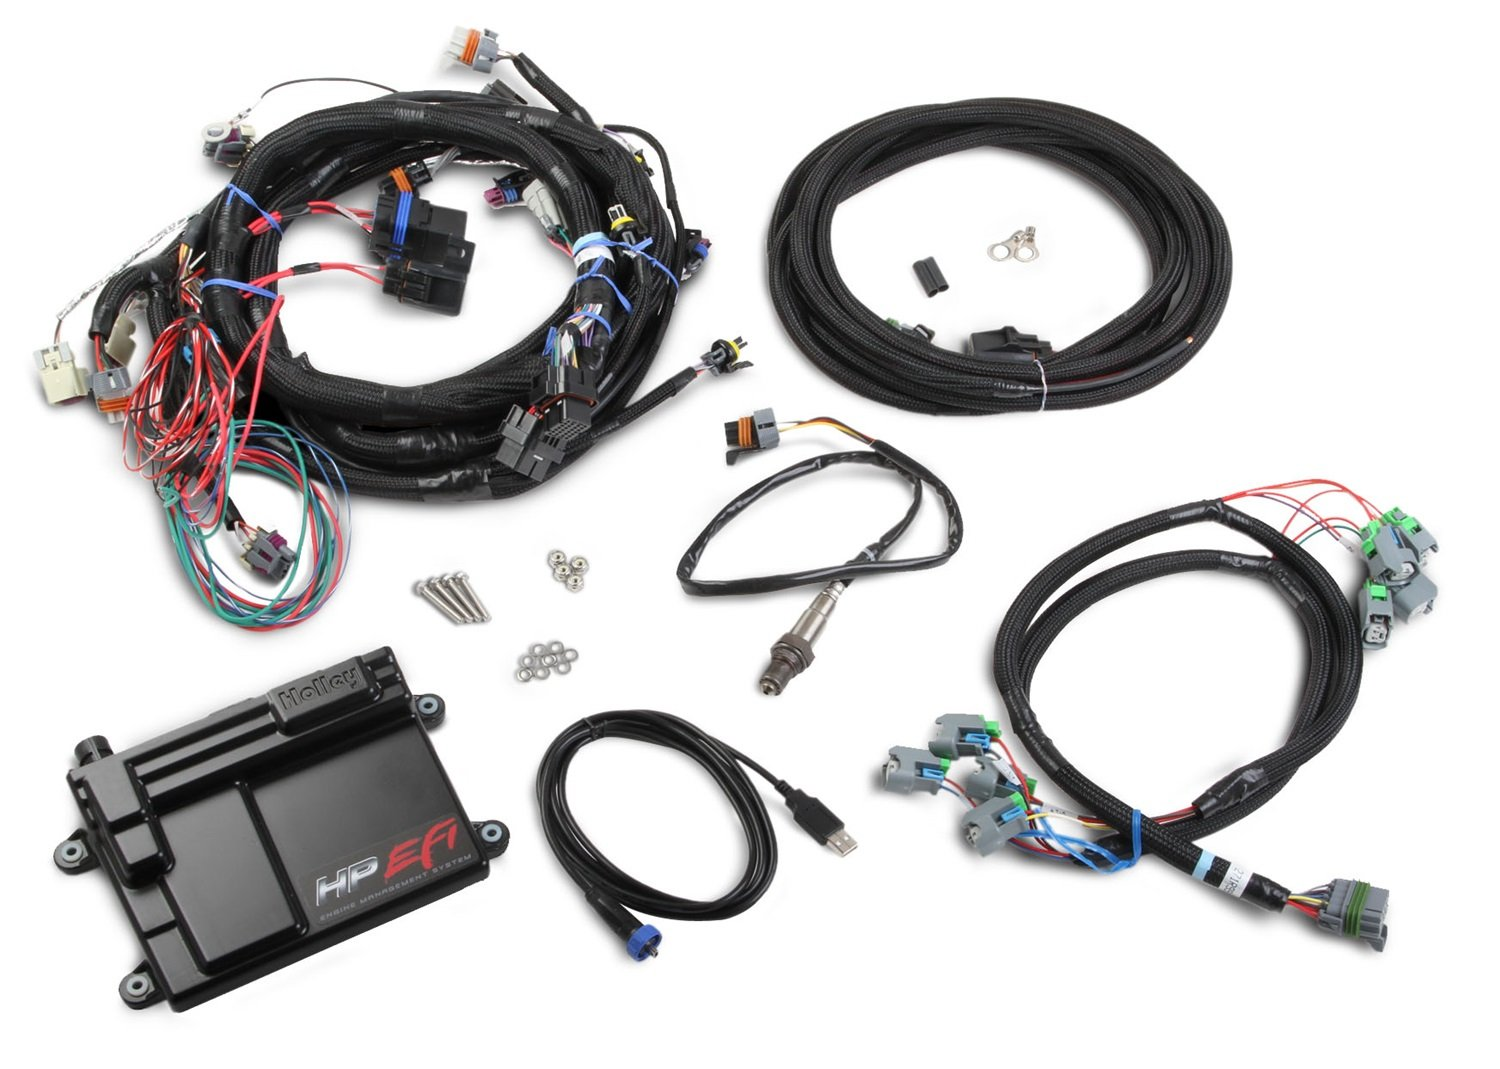 71XAm%2B c gL._SL1500_ amazon com holley 550 603 hp efi, ecu and harness kit automotive ecu wiring harness for 1999 mazda 626 at eliteediting.co